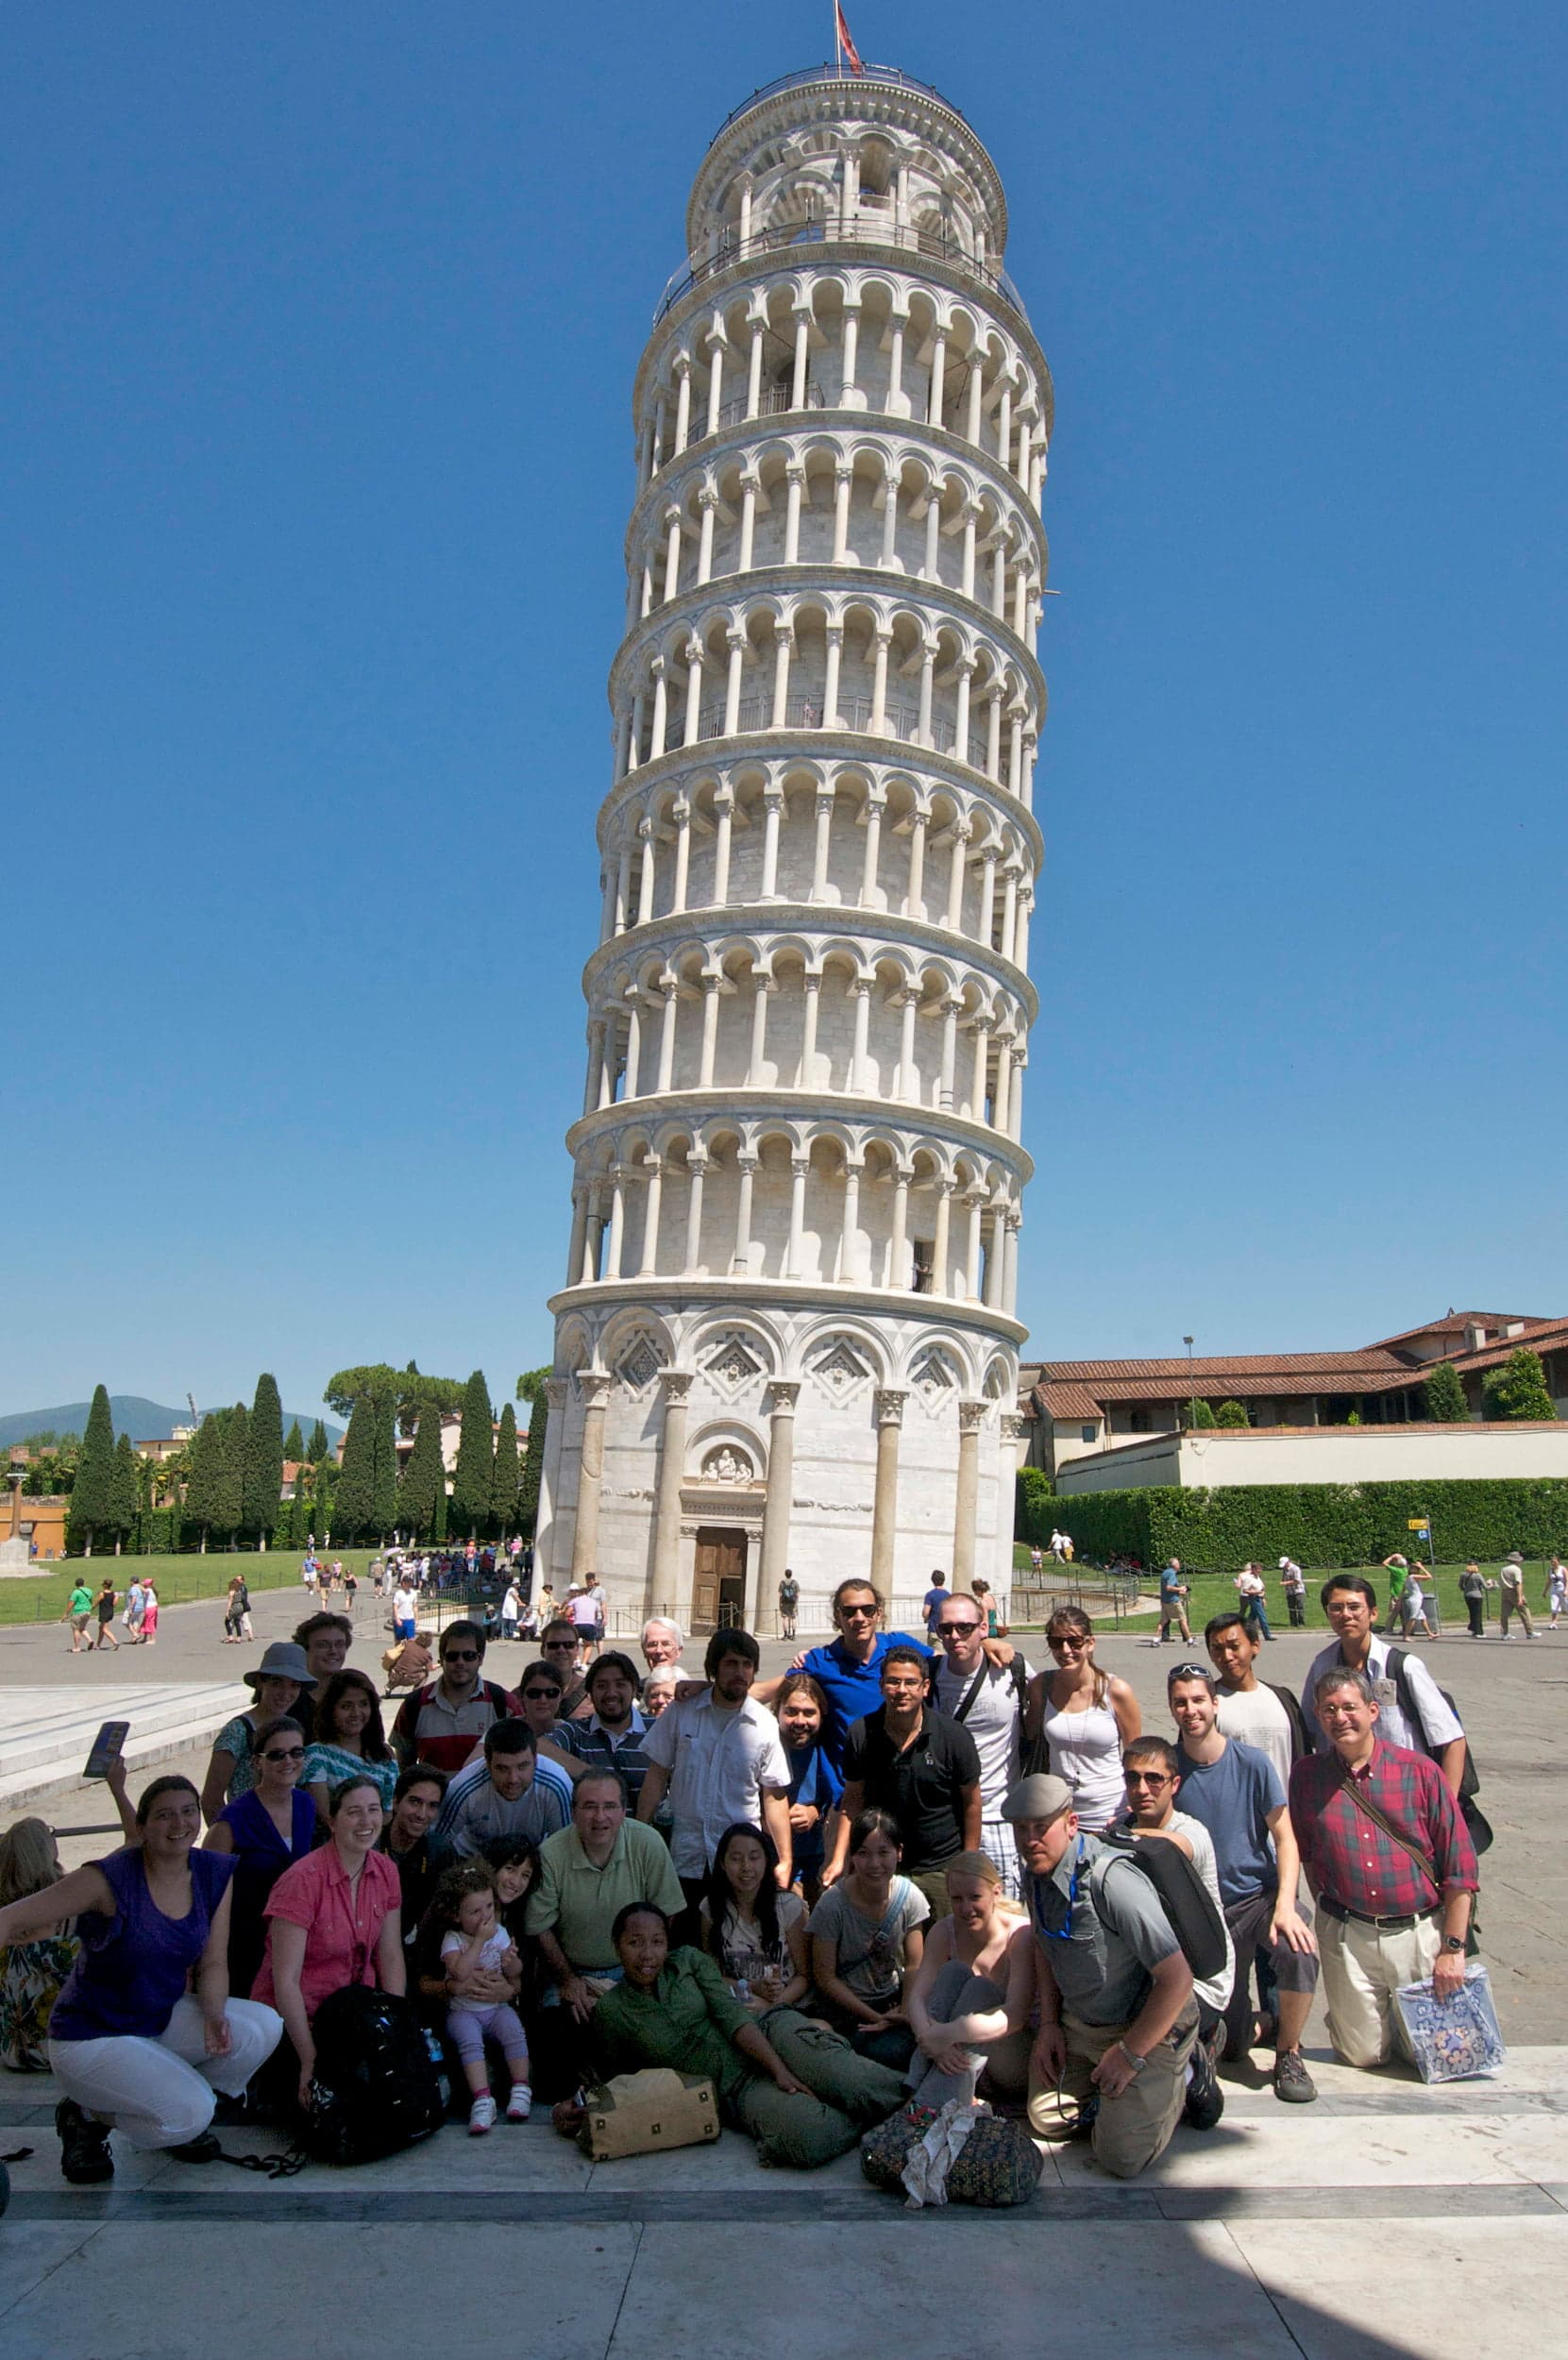 Students in front of Leaning Tower of Pisa